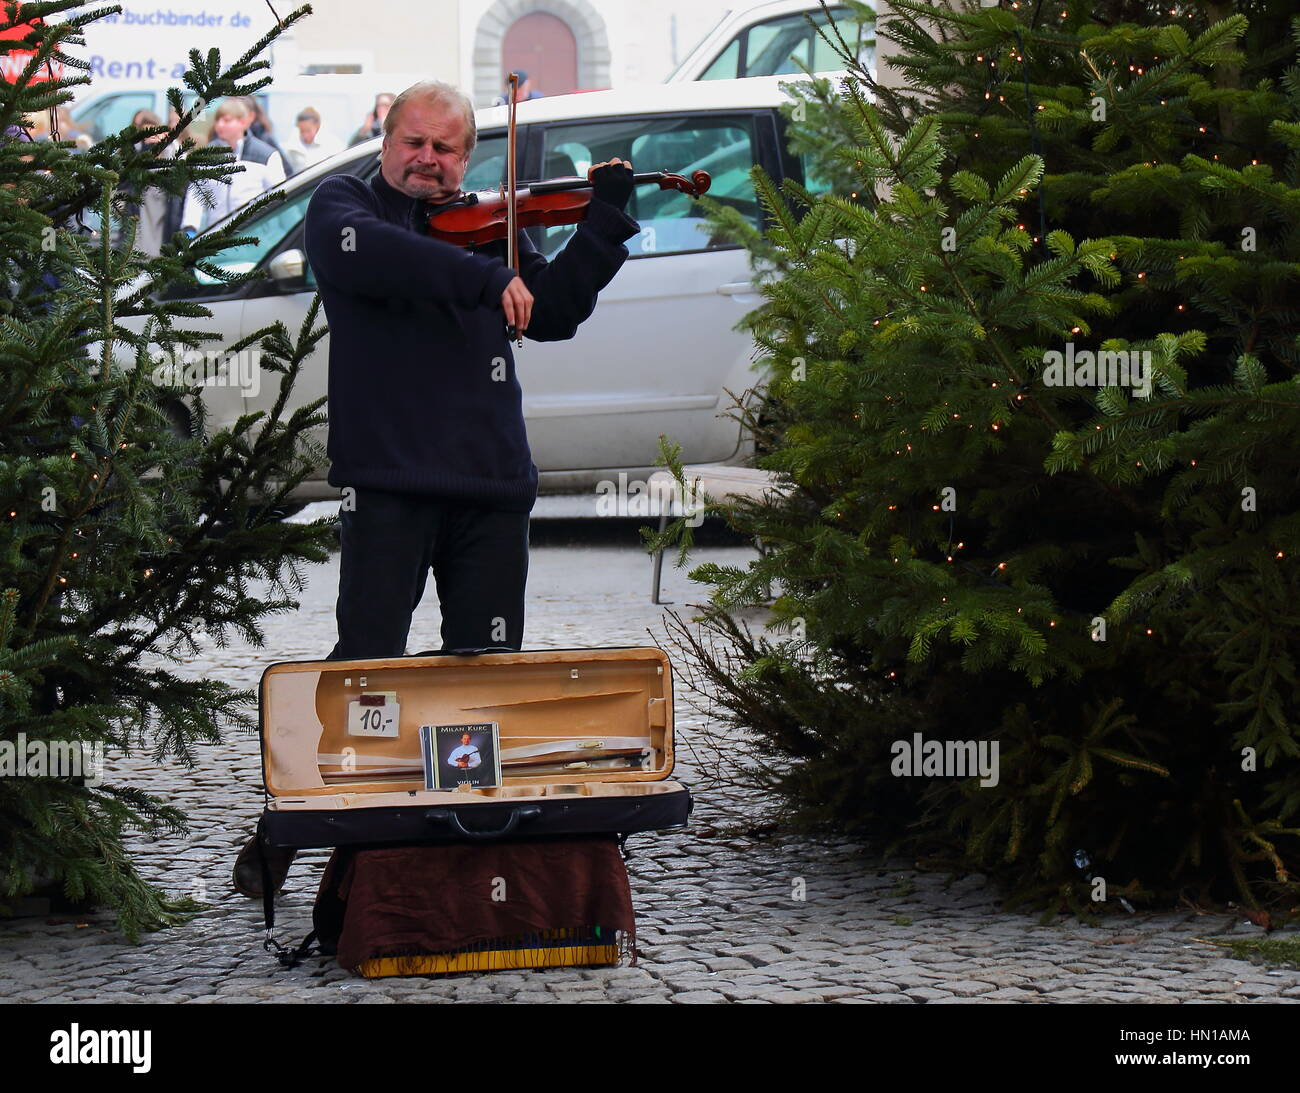 Christmas markets in Europe are an annual celebration with a busker playing his violin for tourists. - Stock Image